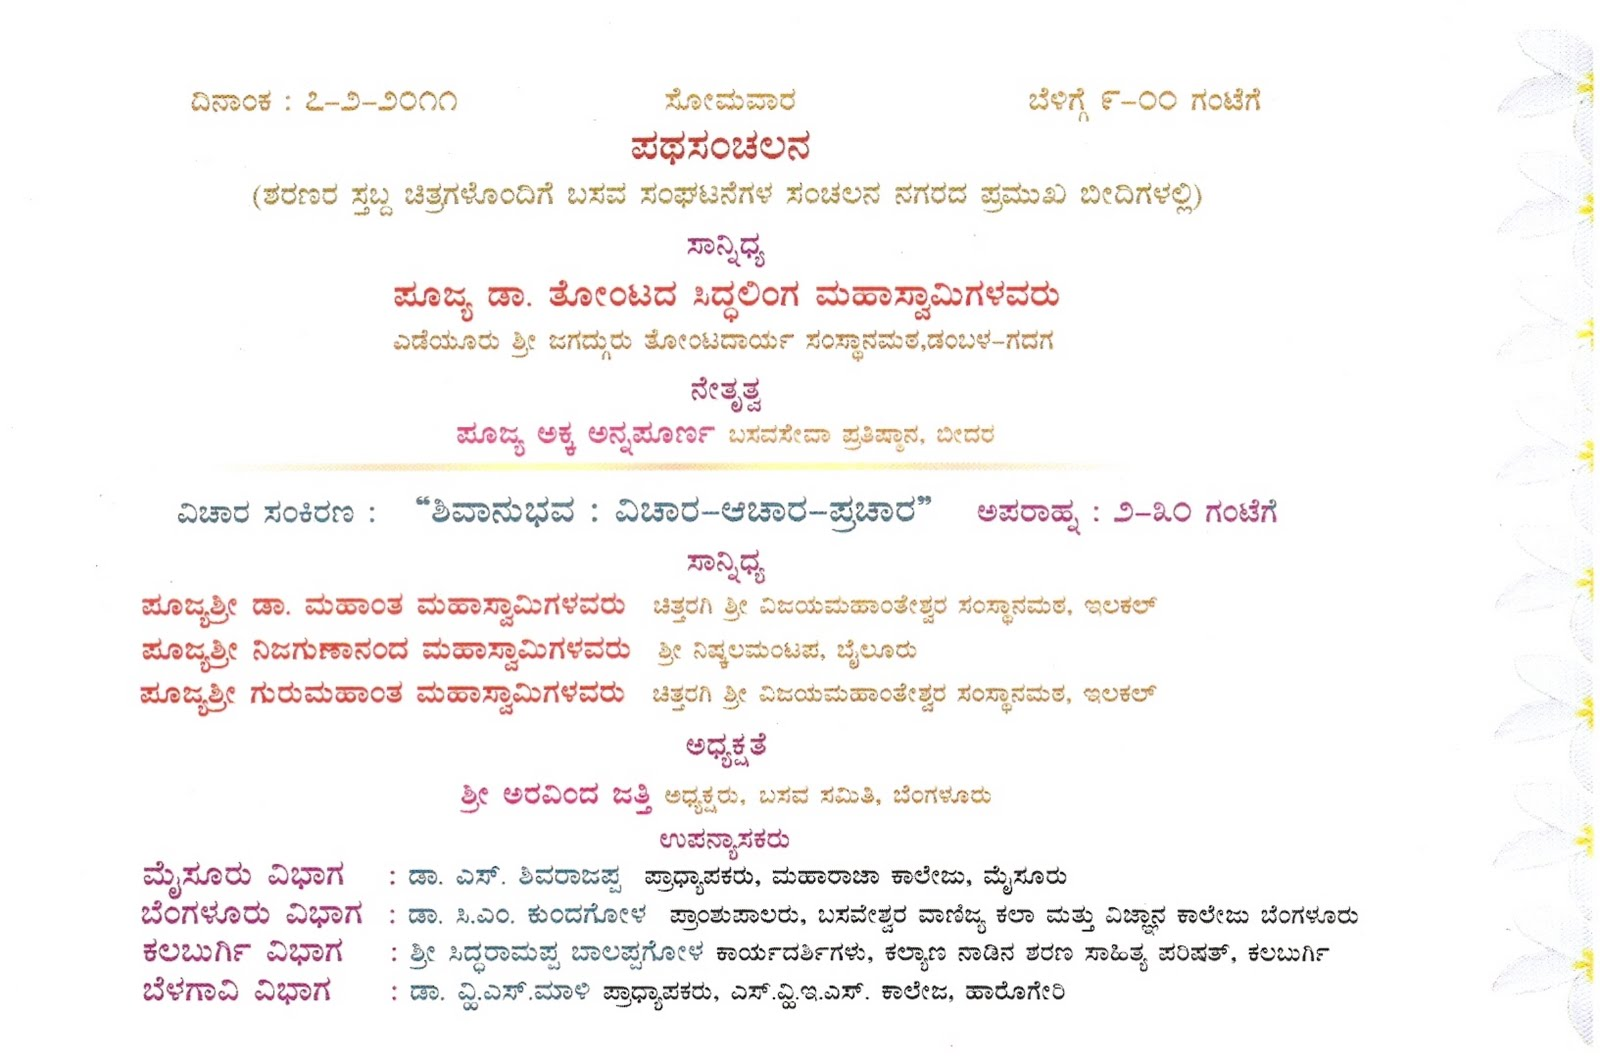 Wedding invitation wording samples in kannada wedding wedding invitation wording for friends in kannada yaseen stopboris Choice Image